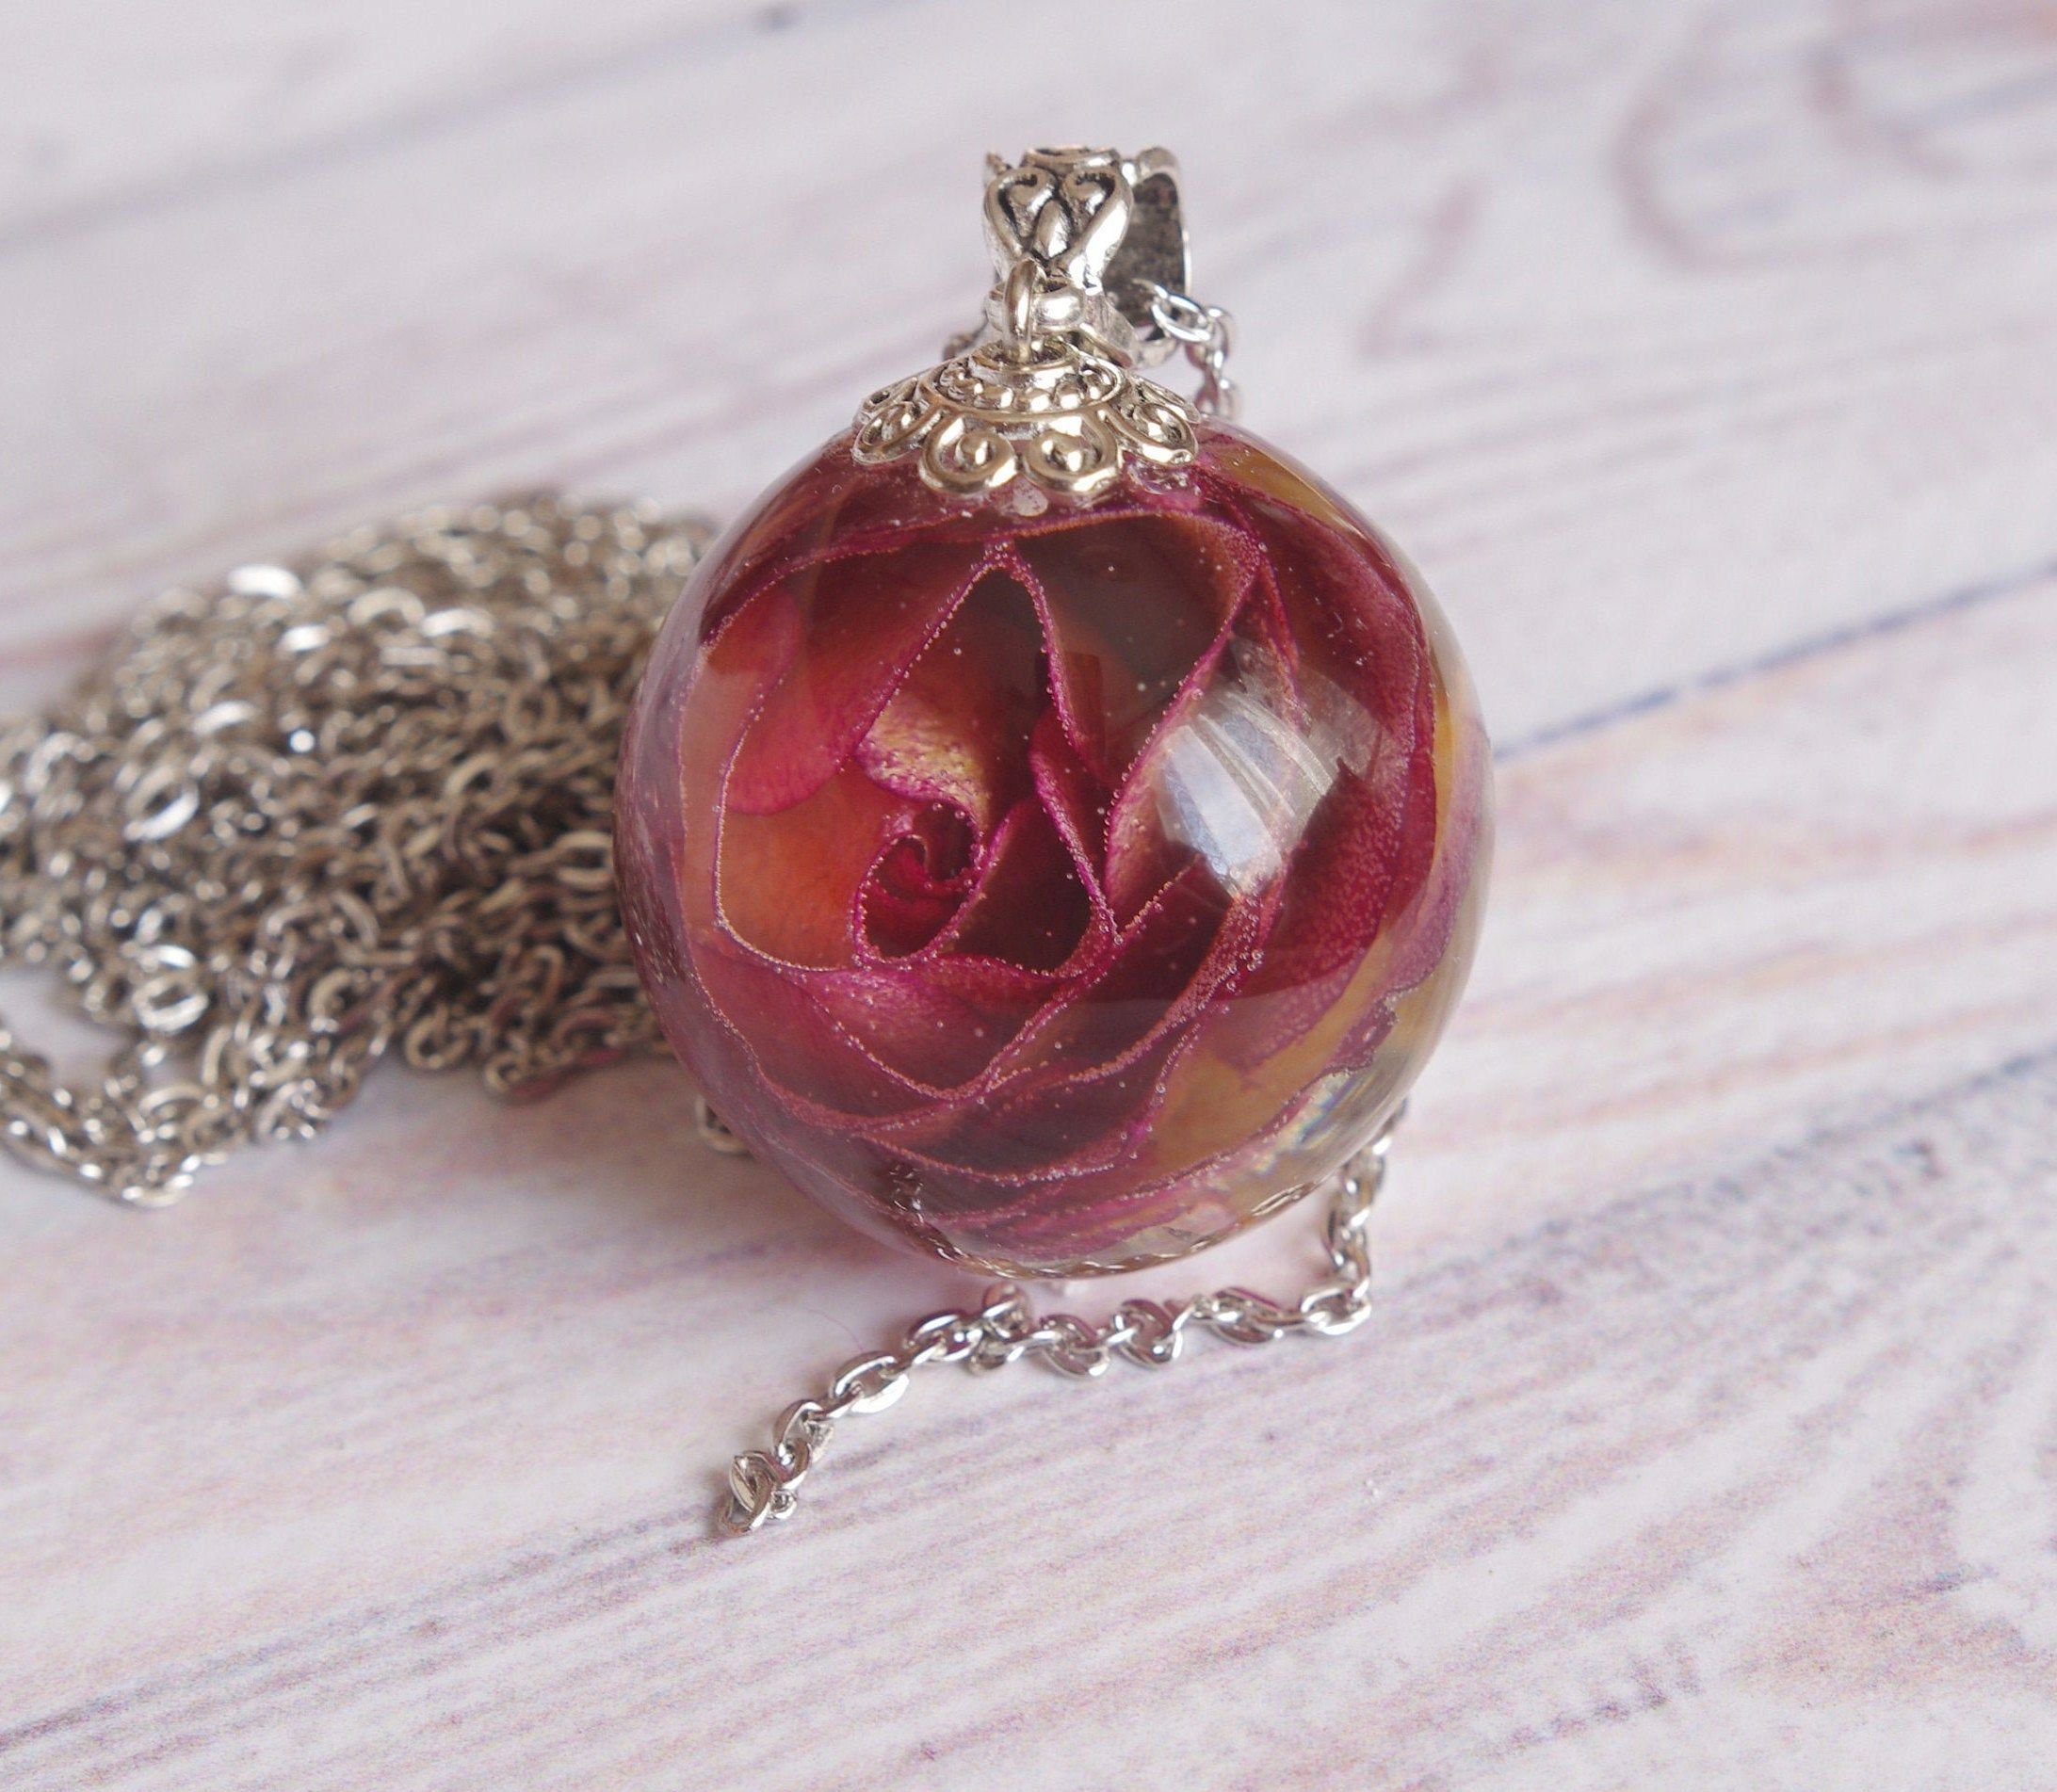 Real Rose Sphere Necklace Nature Resin Ball 1 1 8 Botanical Pendant Dark Pink Rose Jewelry Dried Flower Neckl Flower Resin Jewelry Crystal Resin Rose Necklace